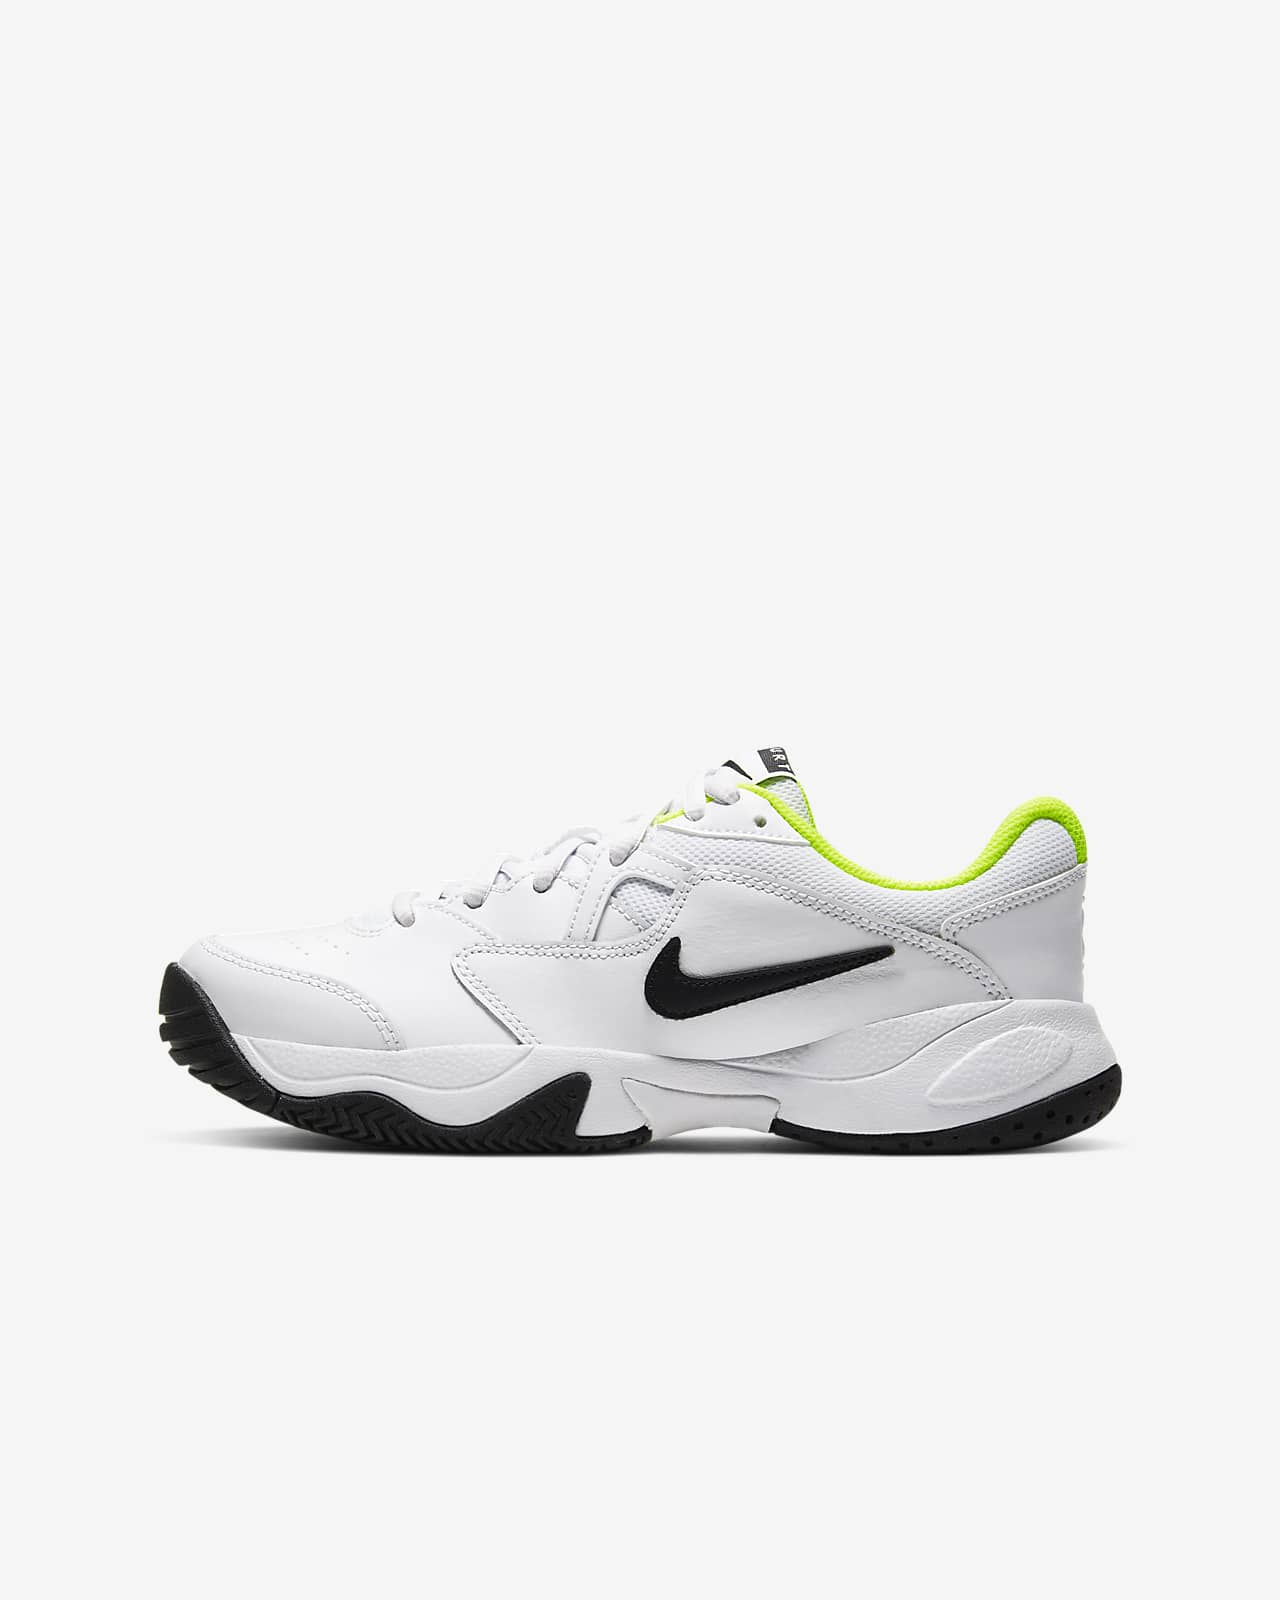 Nikecourt Jr Lite 2 Older Kids Tennis Shoe Nike Gb